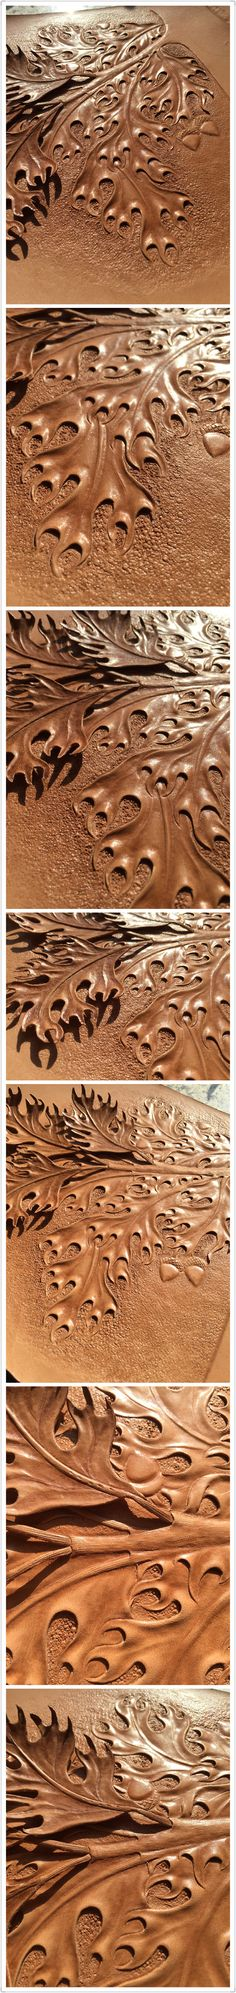 Tooling oak leaves#leather carving